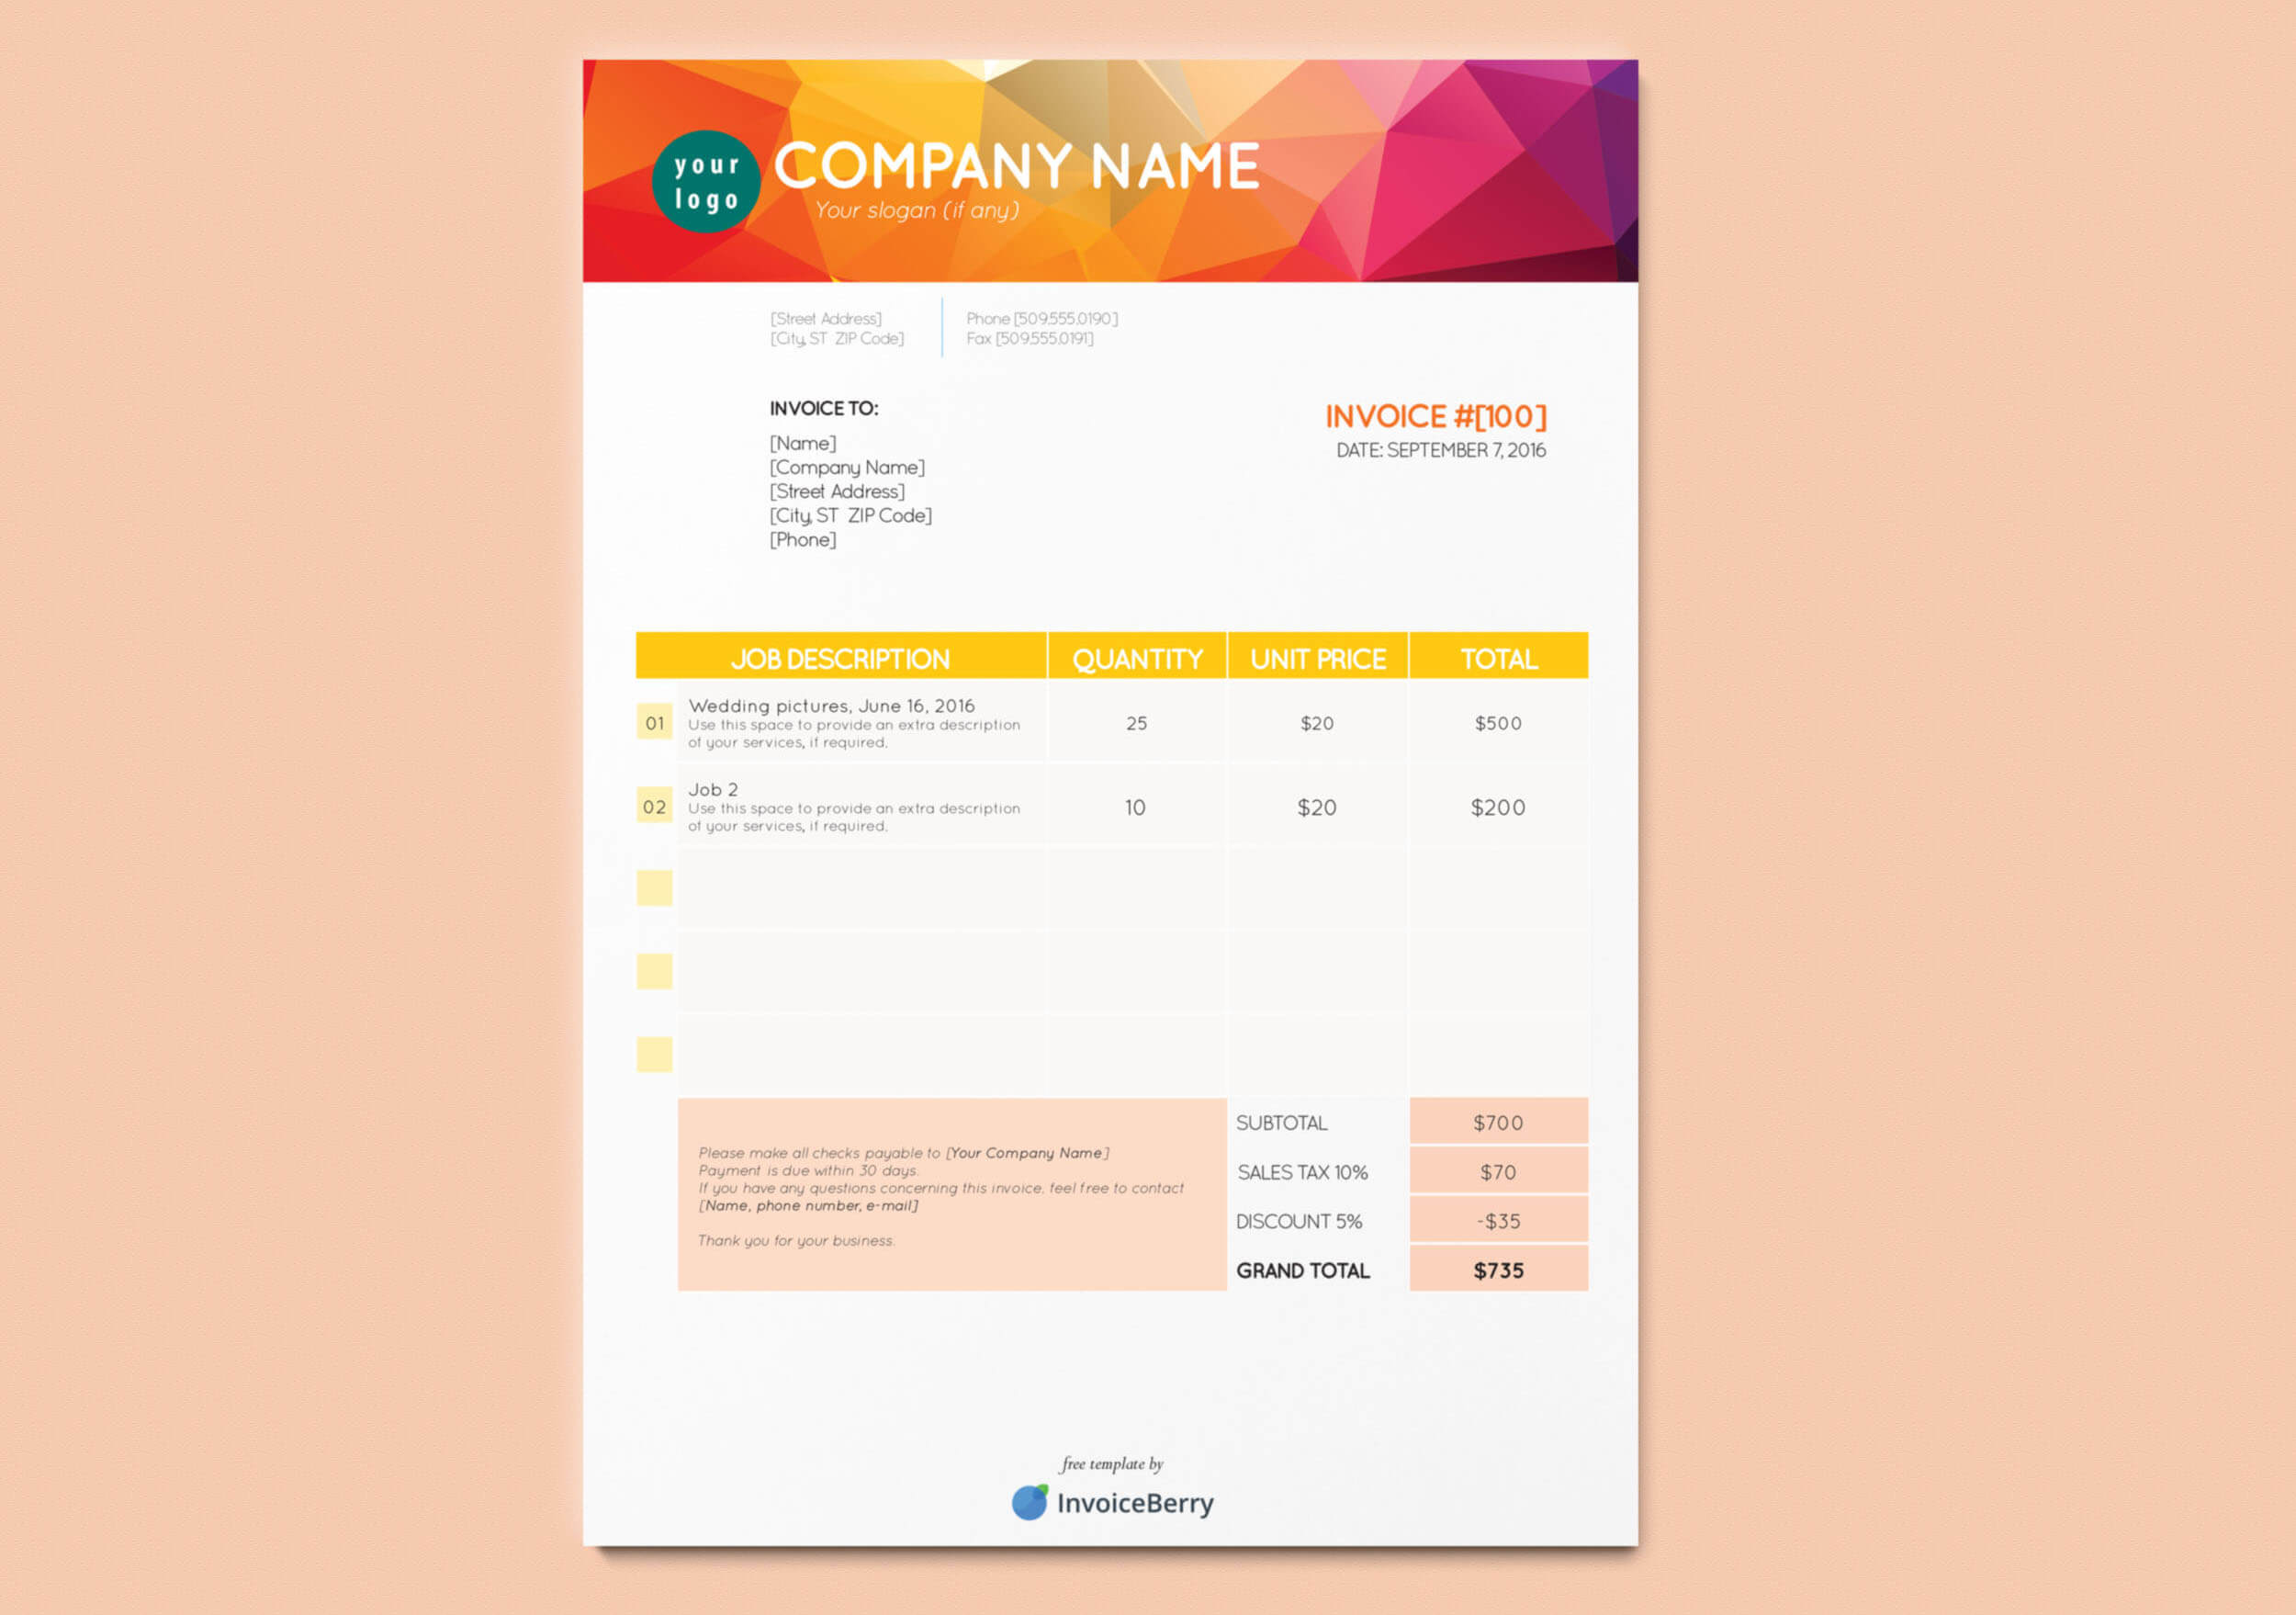 free new indesign invoice templates | invoiceberry blog, Invoice templates